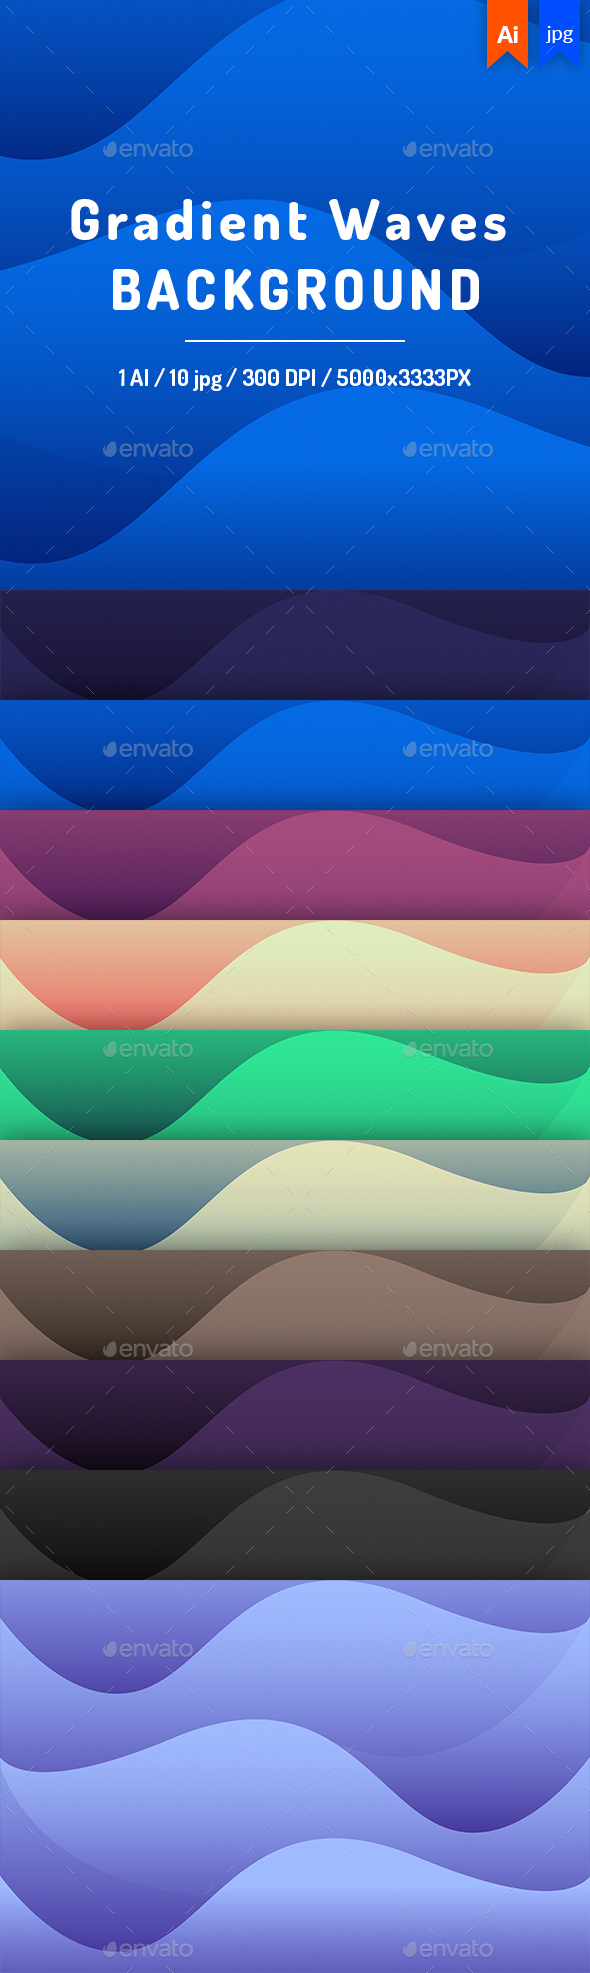 Gradient Waves Background - Backgrounds Graphics